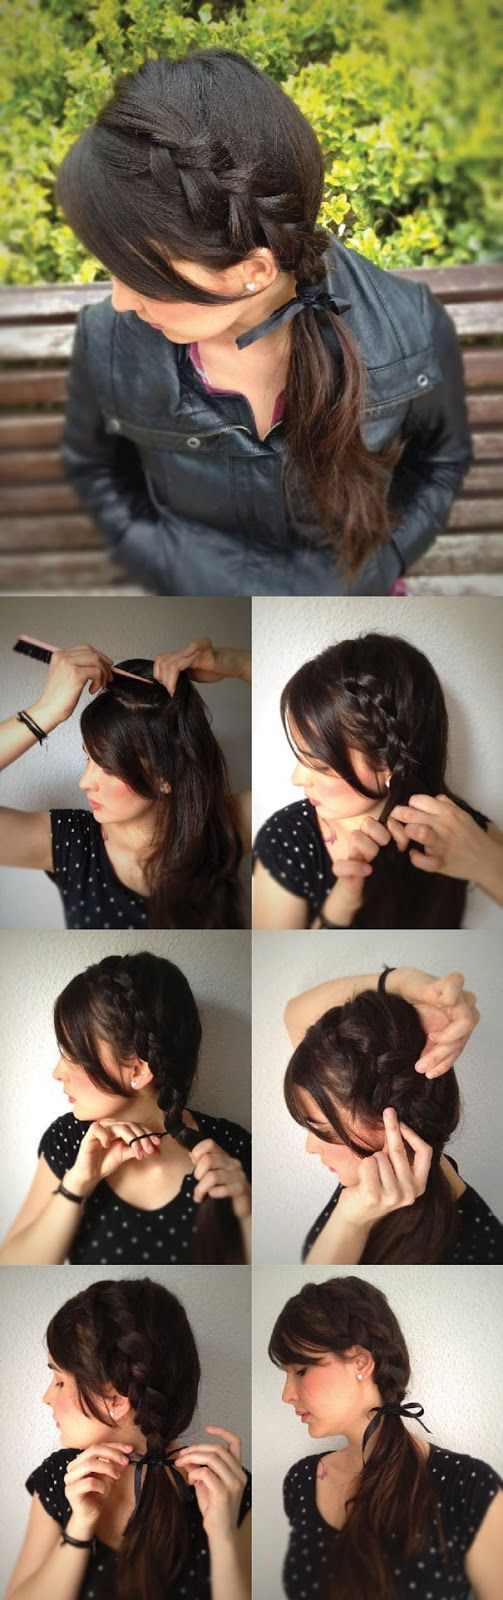 How To Make Beautiful Side Braid